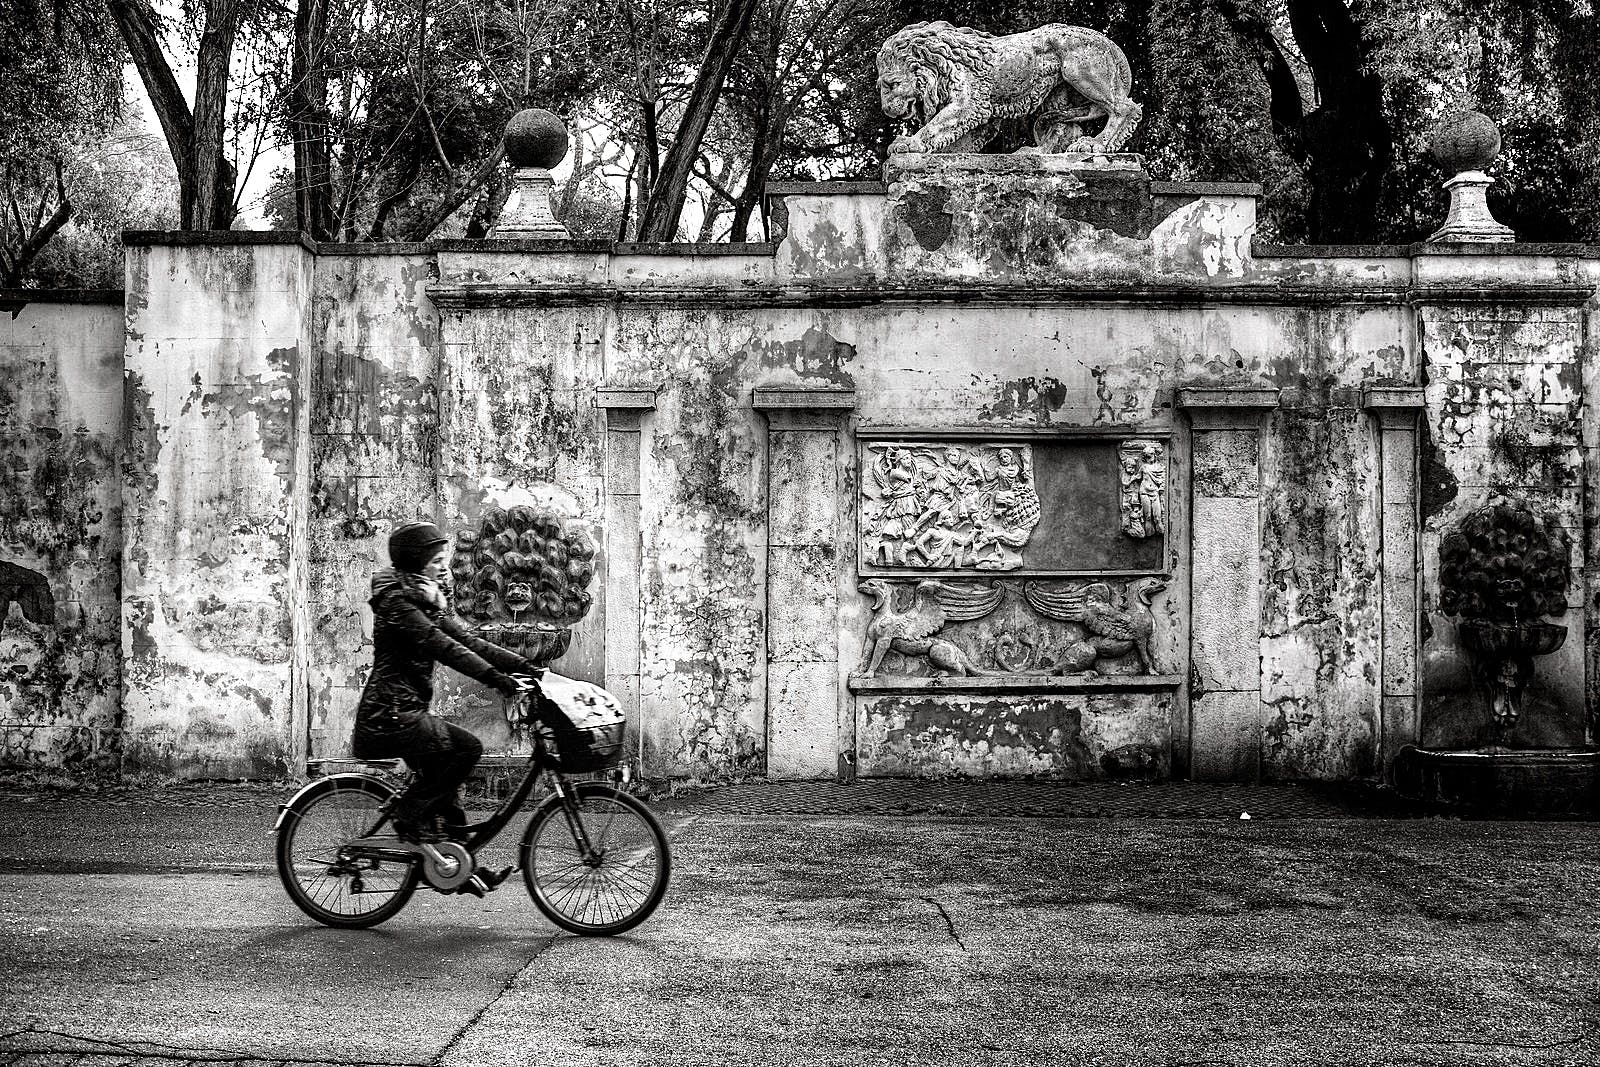 Woman Wearing Jacket and Pants Riding on Bicycle Near Concrete Wall Greyscale Photo